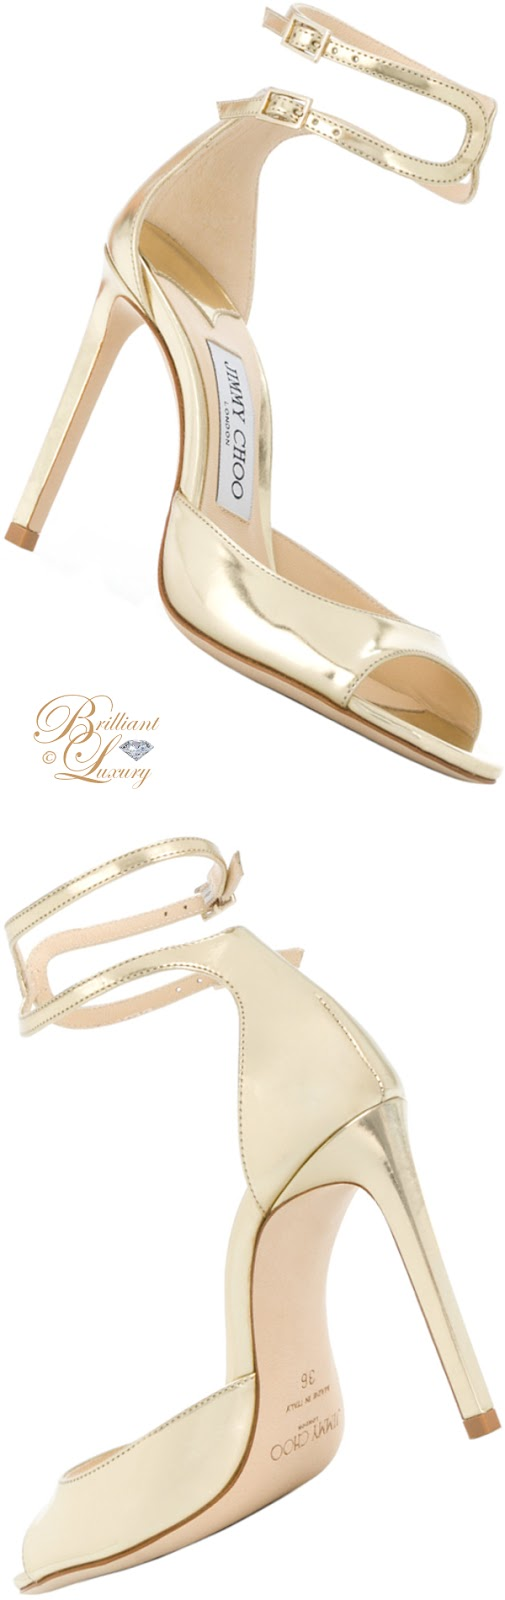 Brilliant Luxury ♦  Jimmy Choo Lane sandals